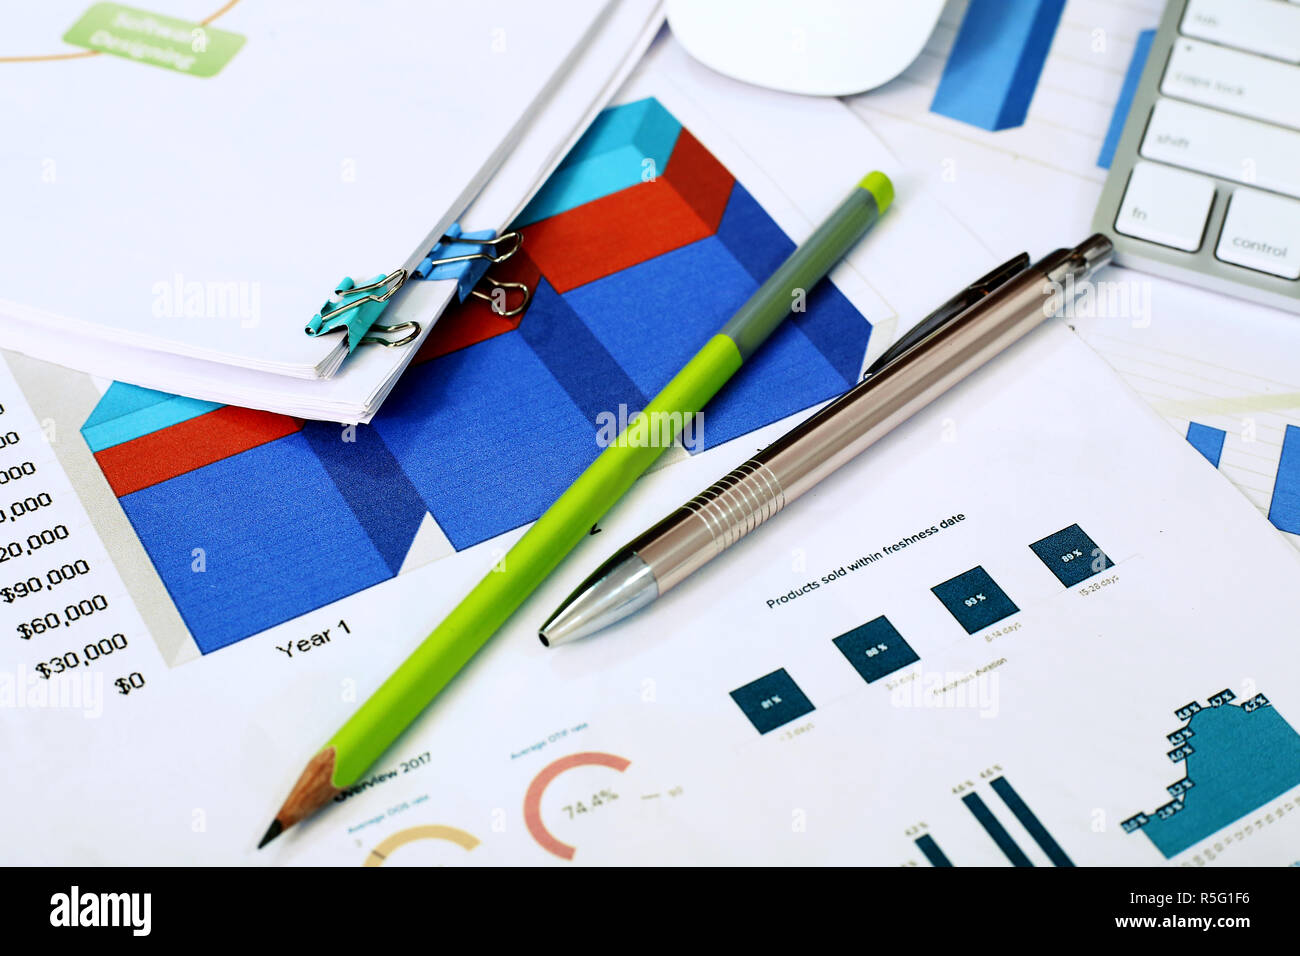 Picture of chart paper, pen and pencil. Stock Photo